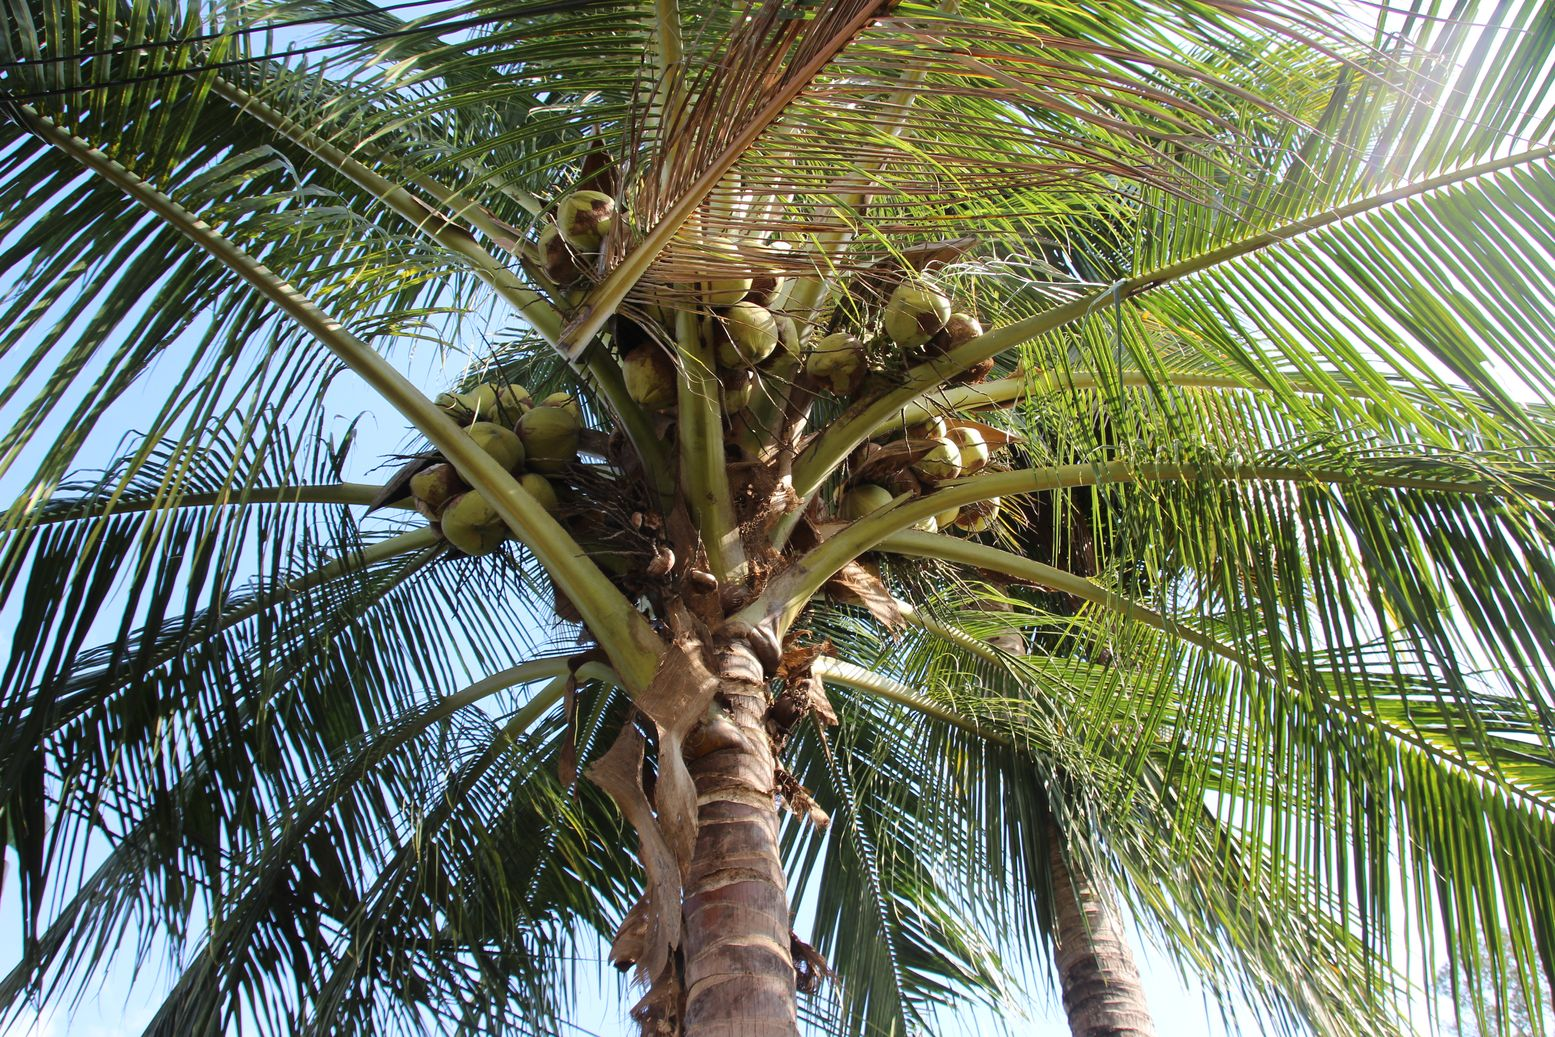 consider us to find a transparent partner for sourcing coconut fatty acids with a traceable supply chain